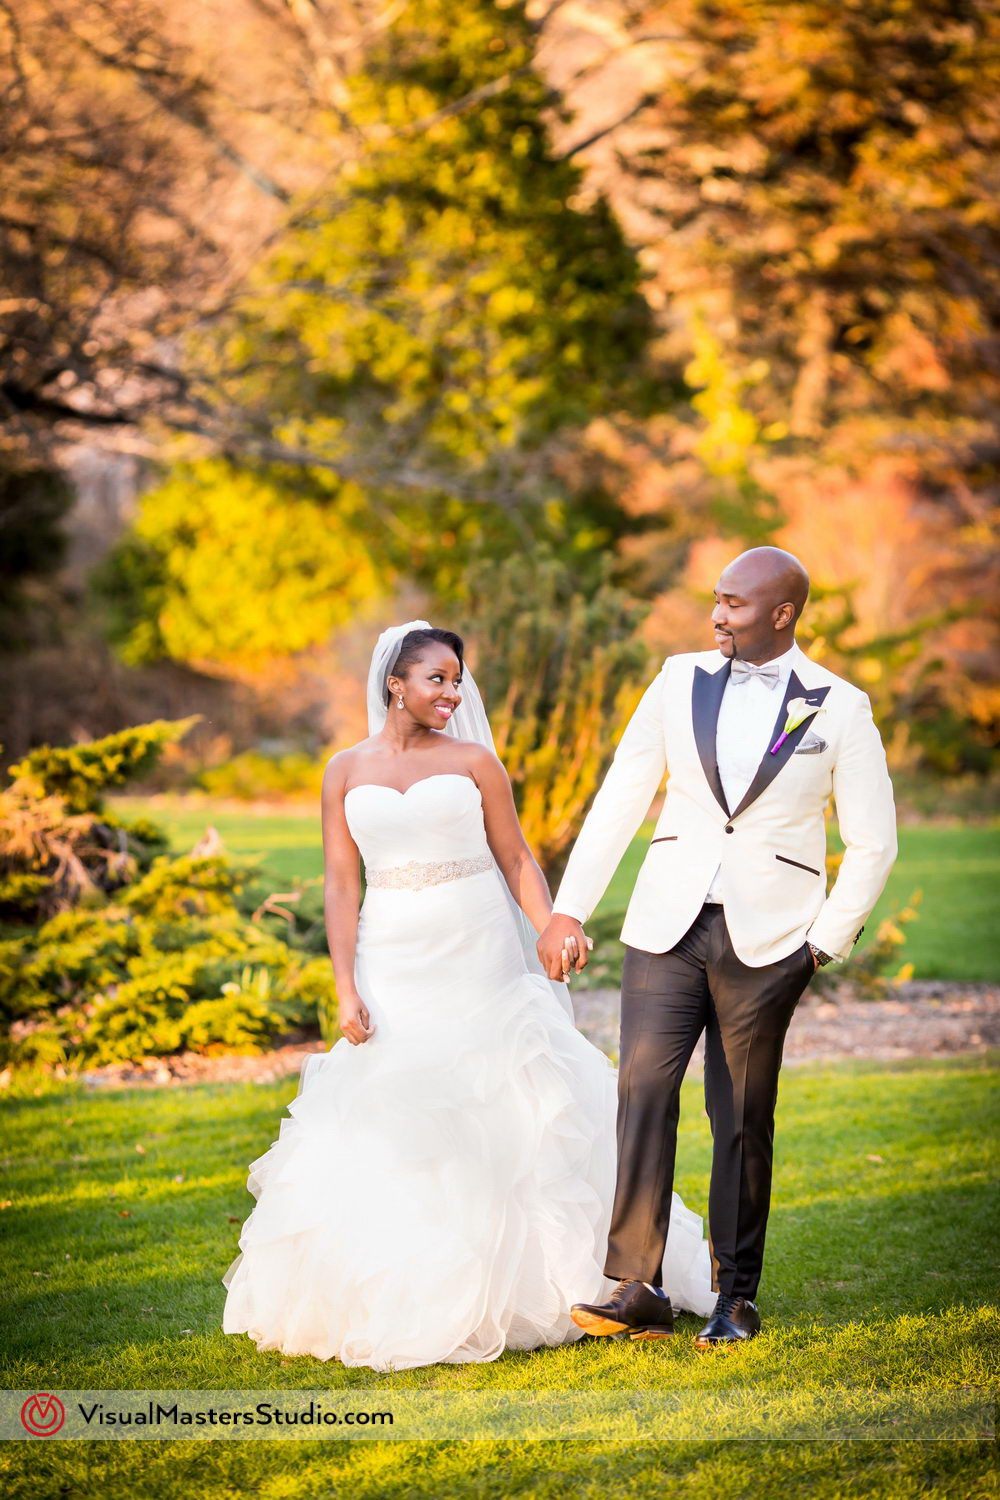 The groom, dressed in a classic tux featuring a white jacket with black collar and silver bow tie, complimented his lovely bride in her sleeveless bride's dress with silver sash.